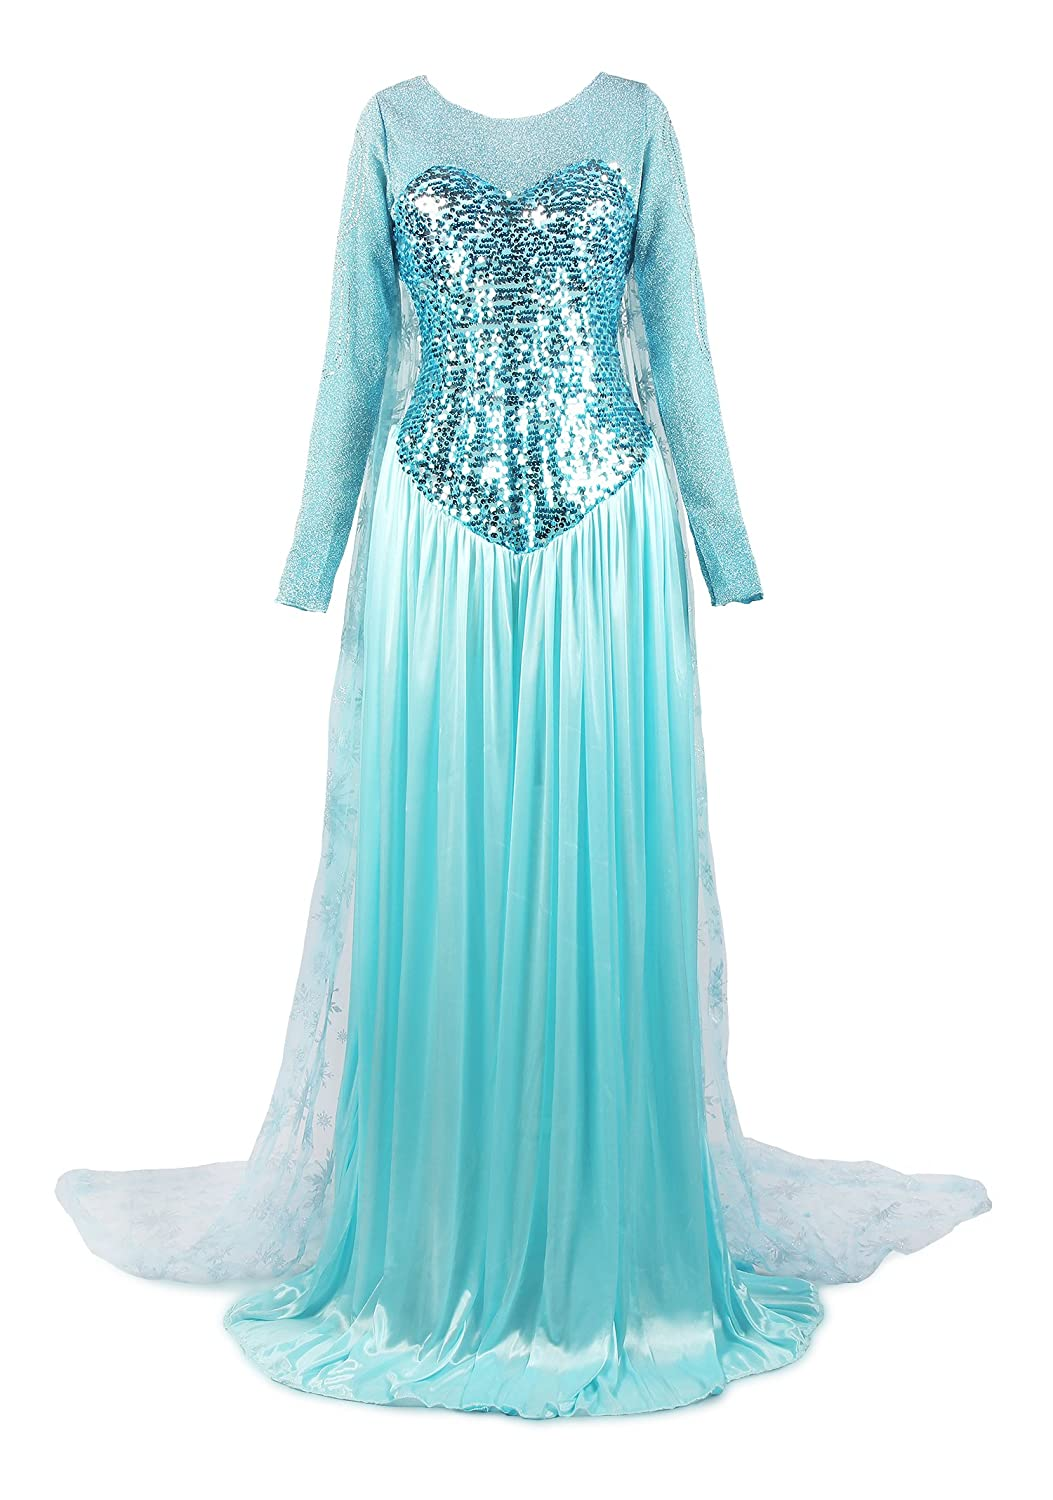 Adult Frozen Costumes Great Photo Booth Ideas